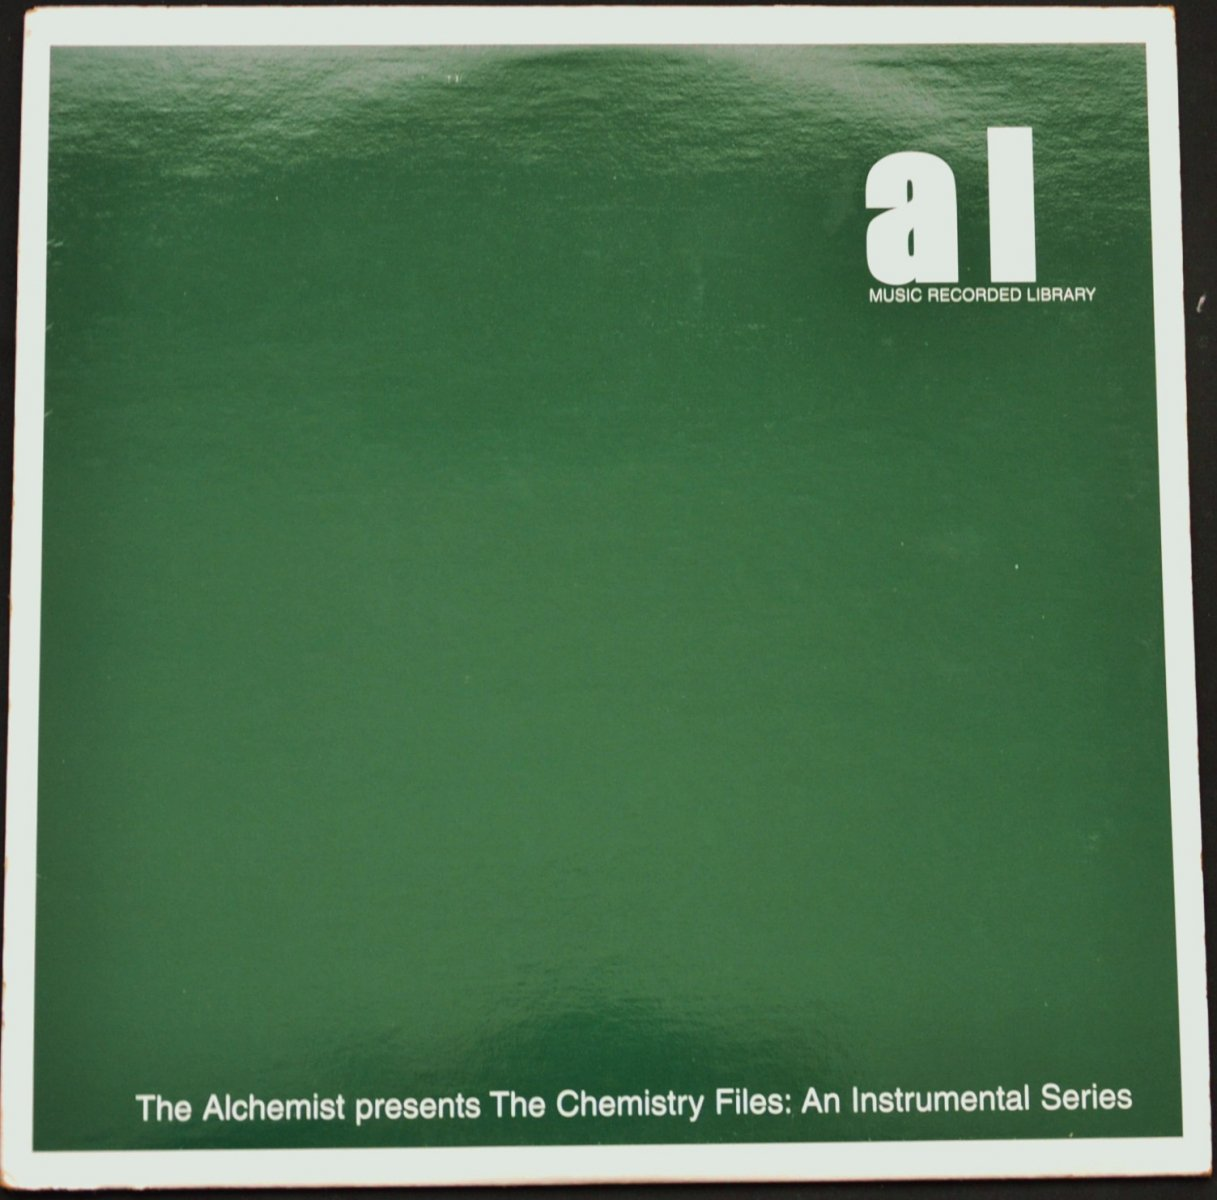 THE ALCHEMIST / THE CHEMISTRY FILES: AN INSTRUMENTAL SERIES (LP)